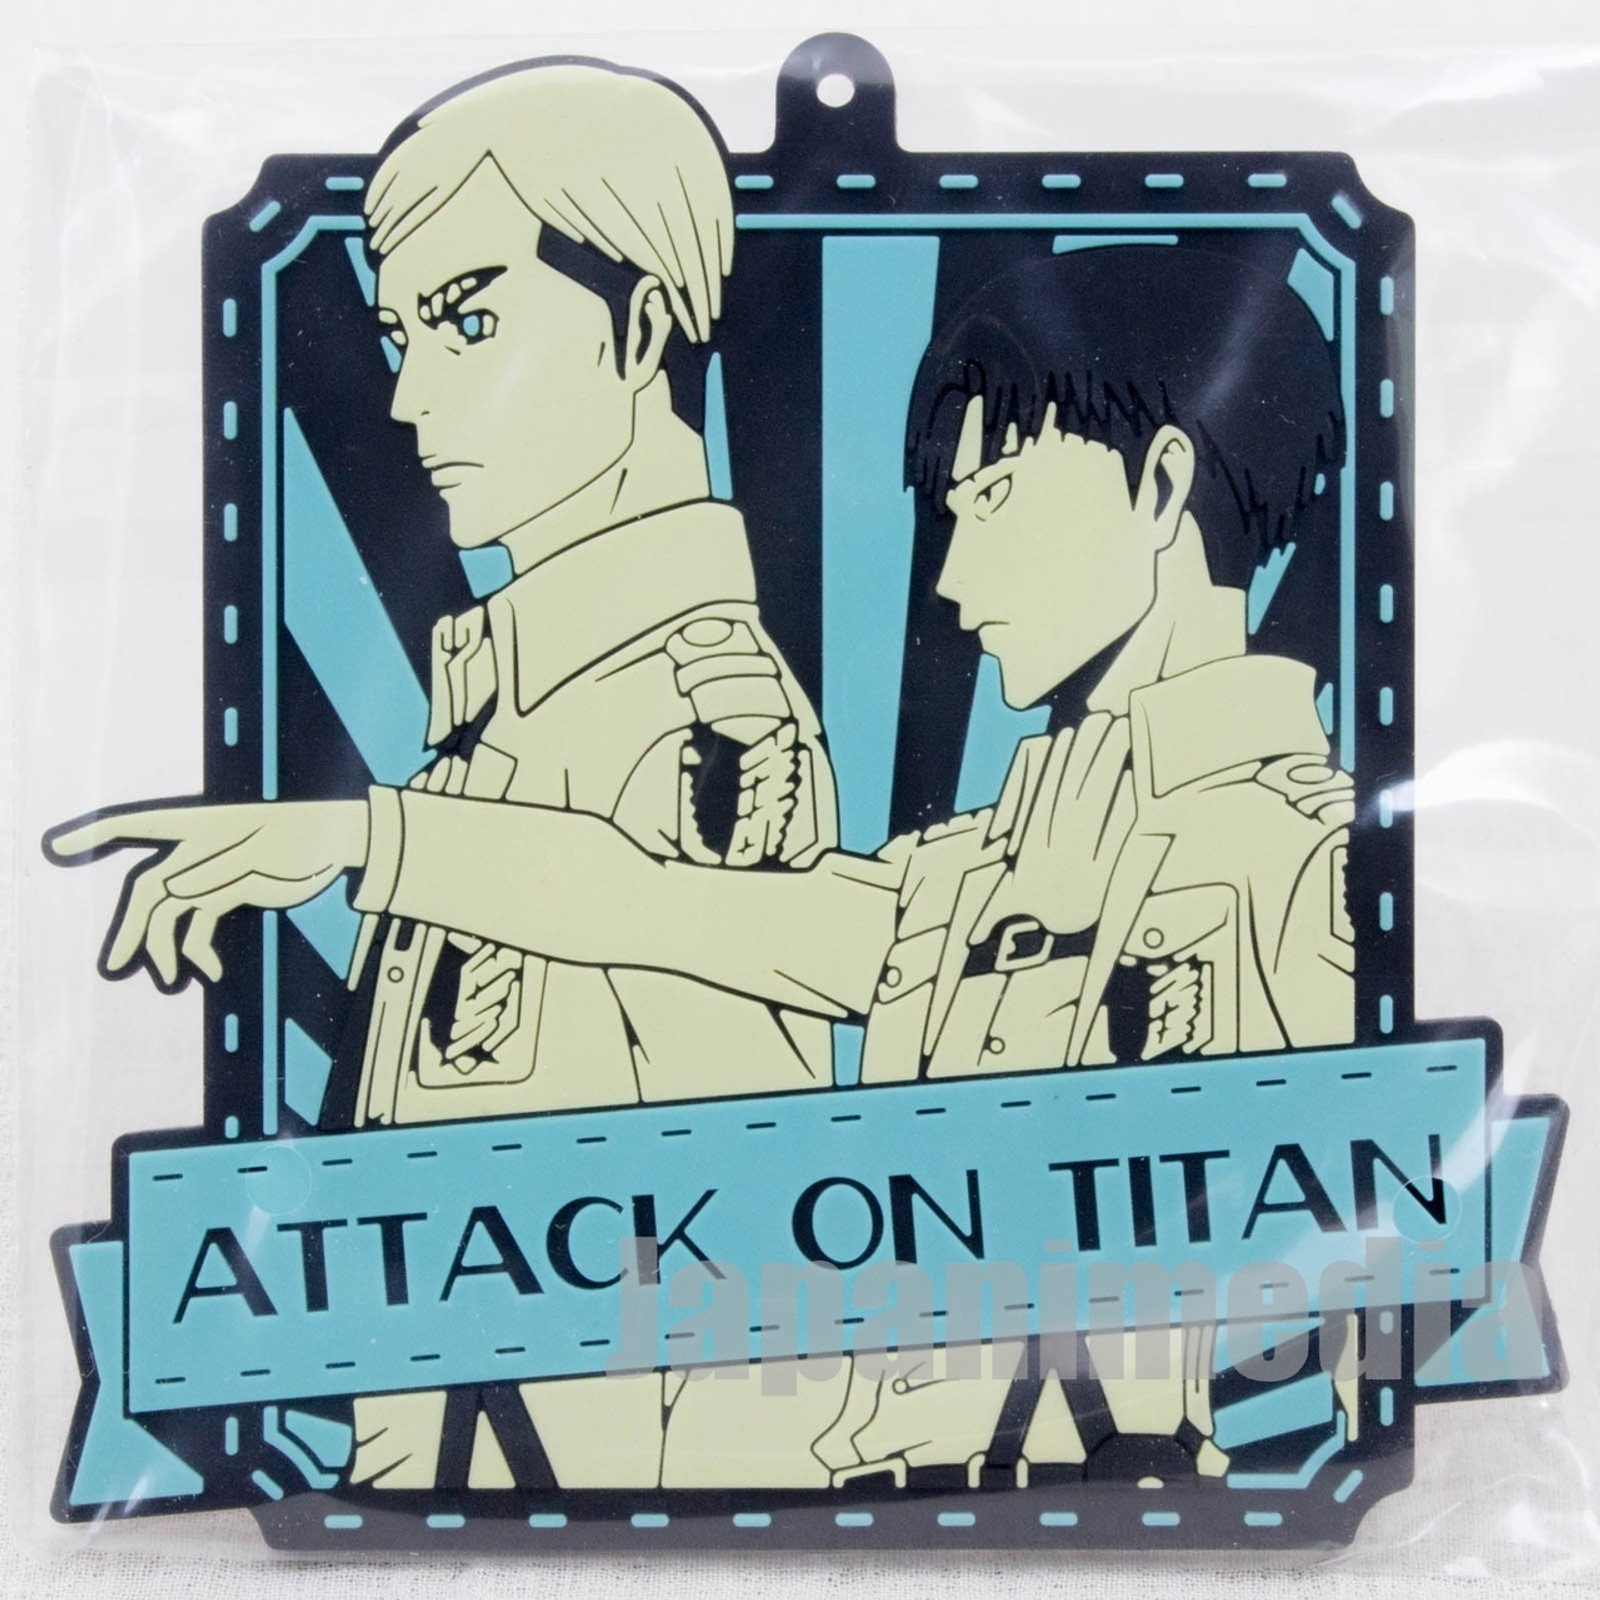 Attack on Titan Rubber Coaster Erwin Smith & Levi Banpresto JAPAN ANIME MANGA